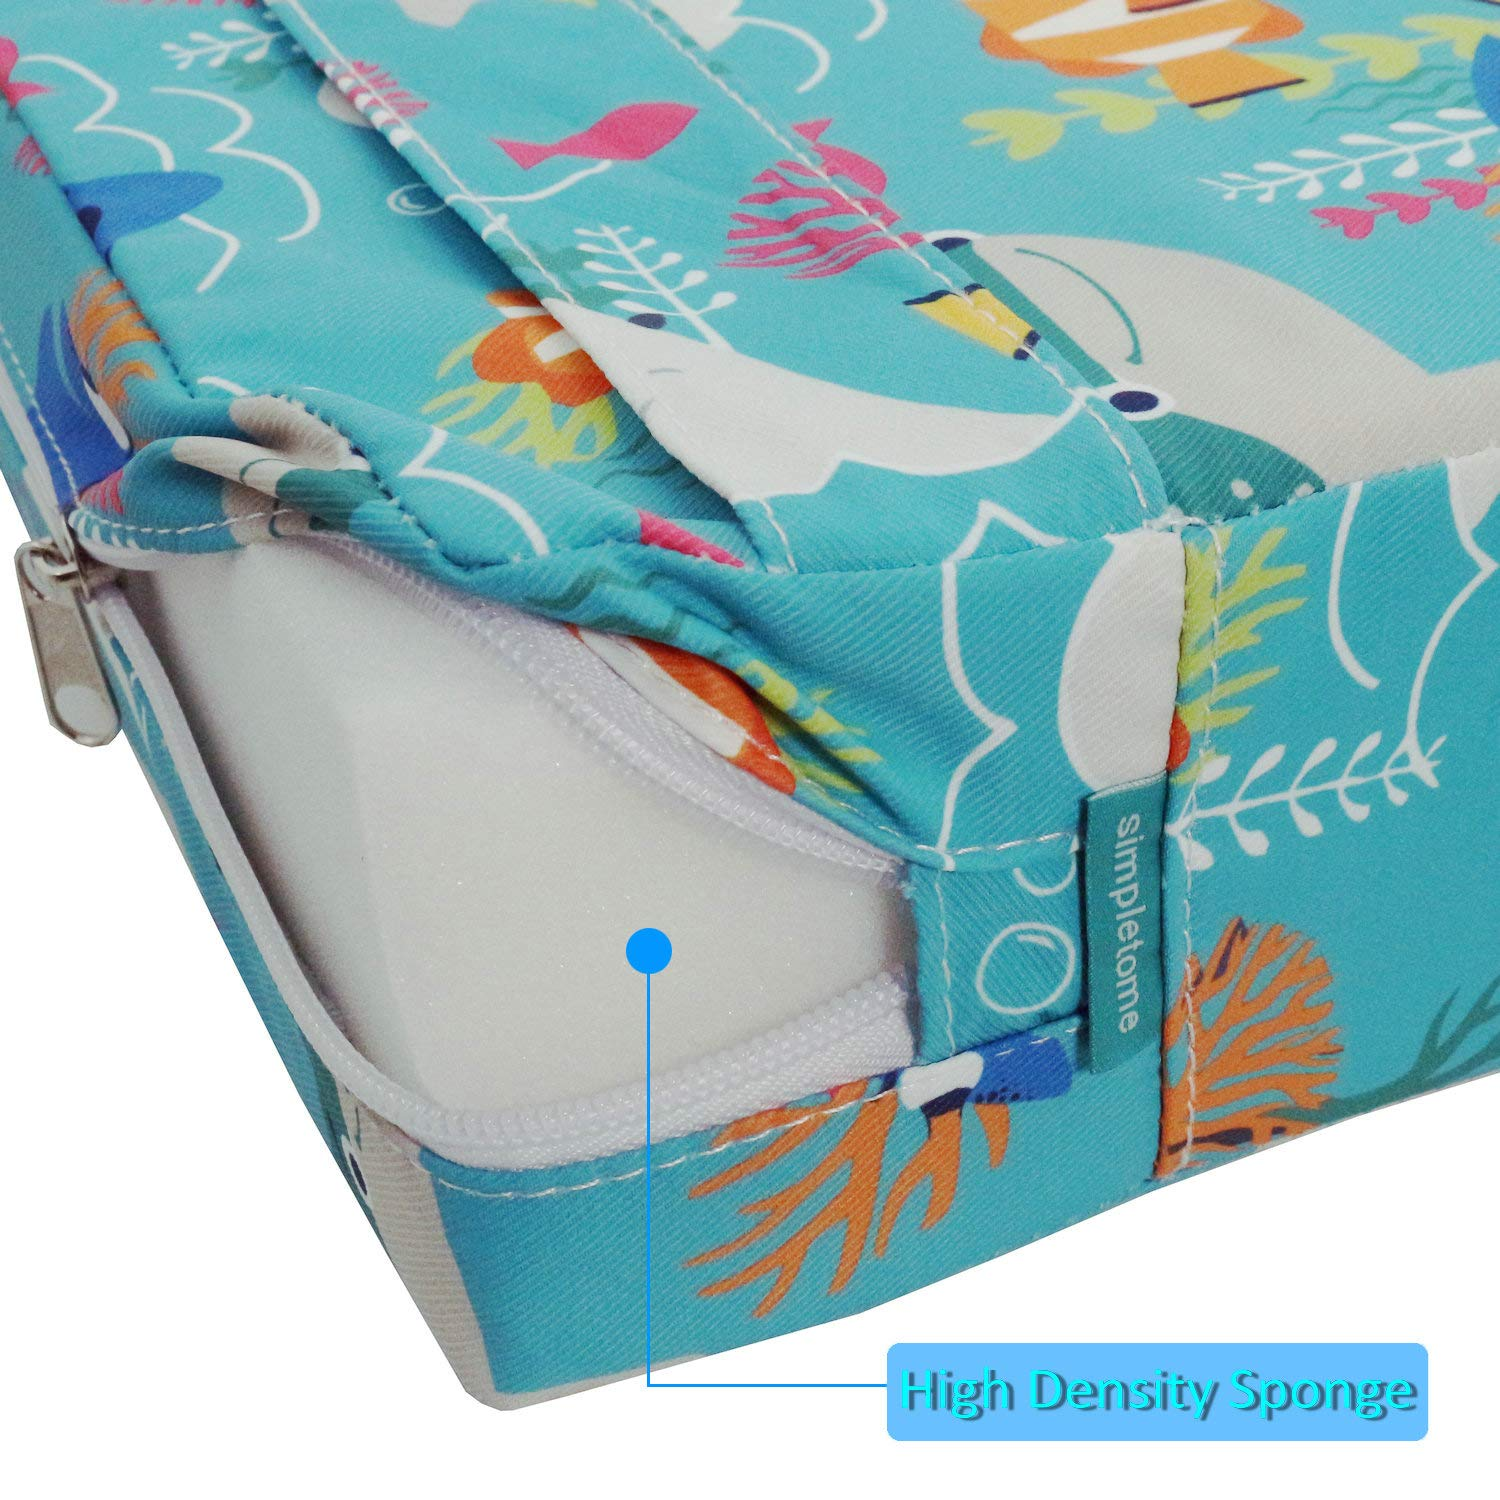 Sea World simpletome Chair Booster Seat Cushion Pad for Big Kids with 4 Safety Fixing Straps